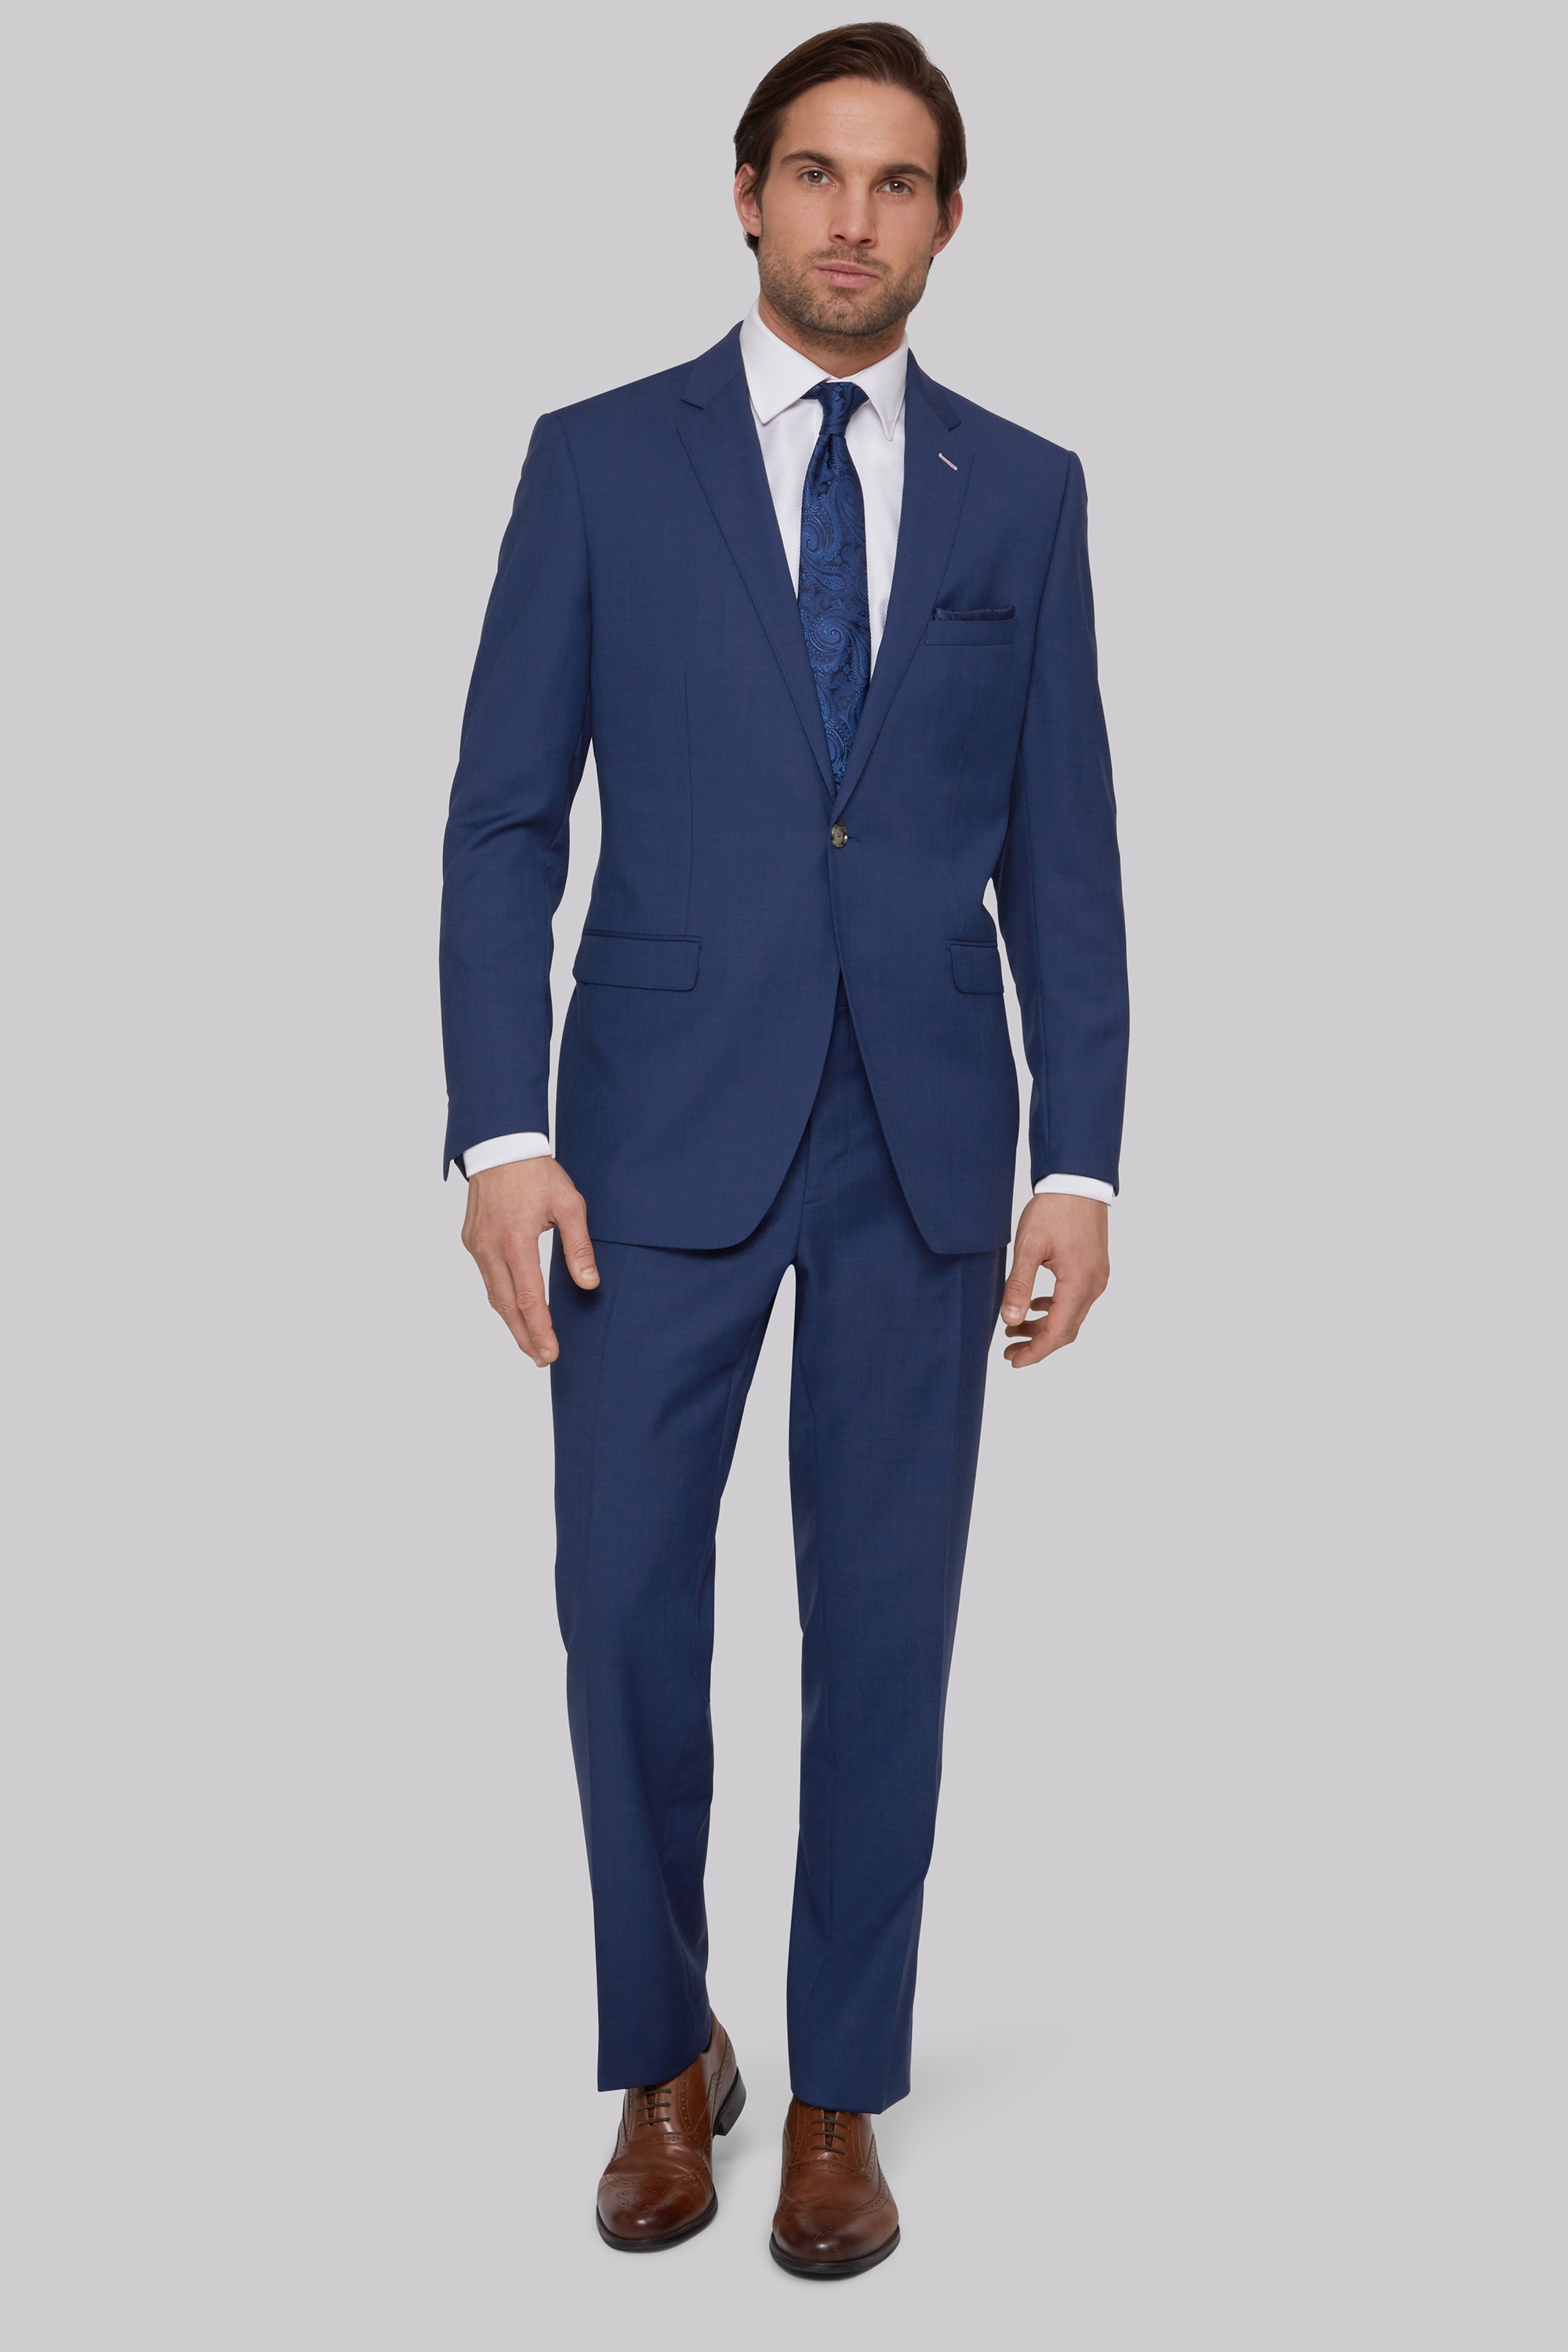 Bros Tailored Fit Bright Blue Suit